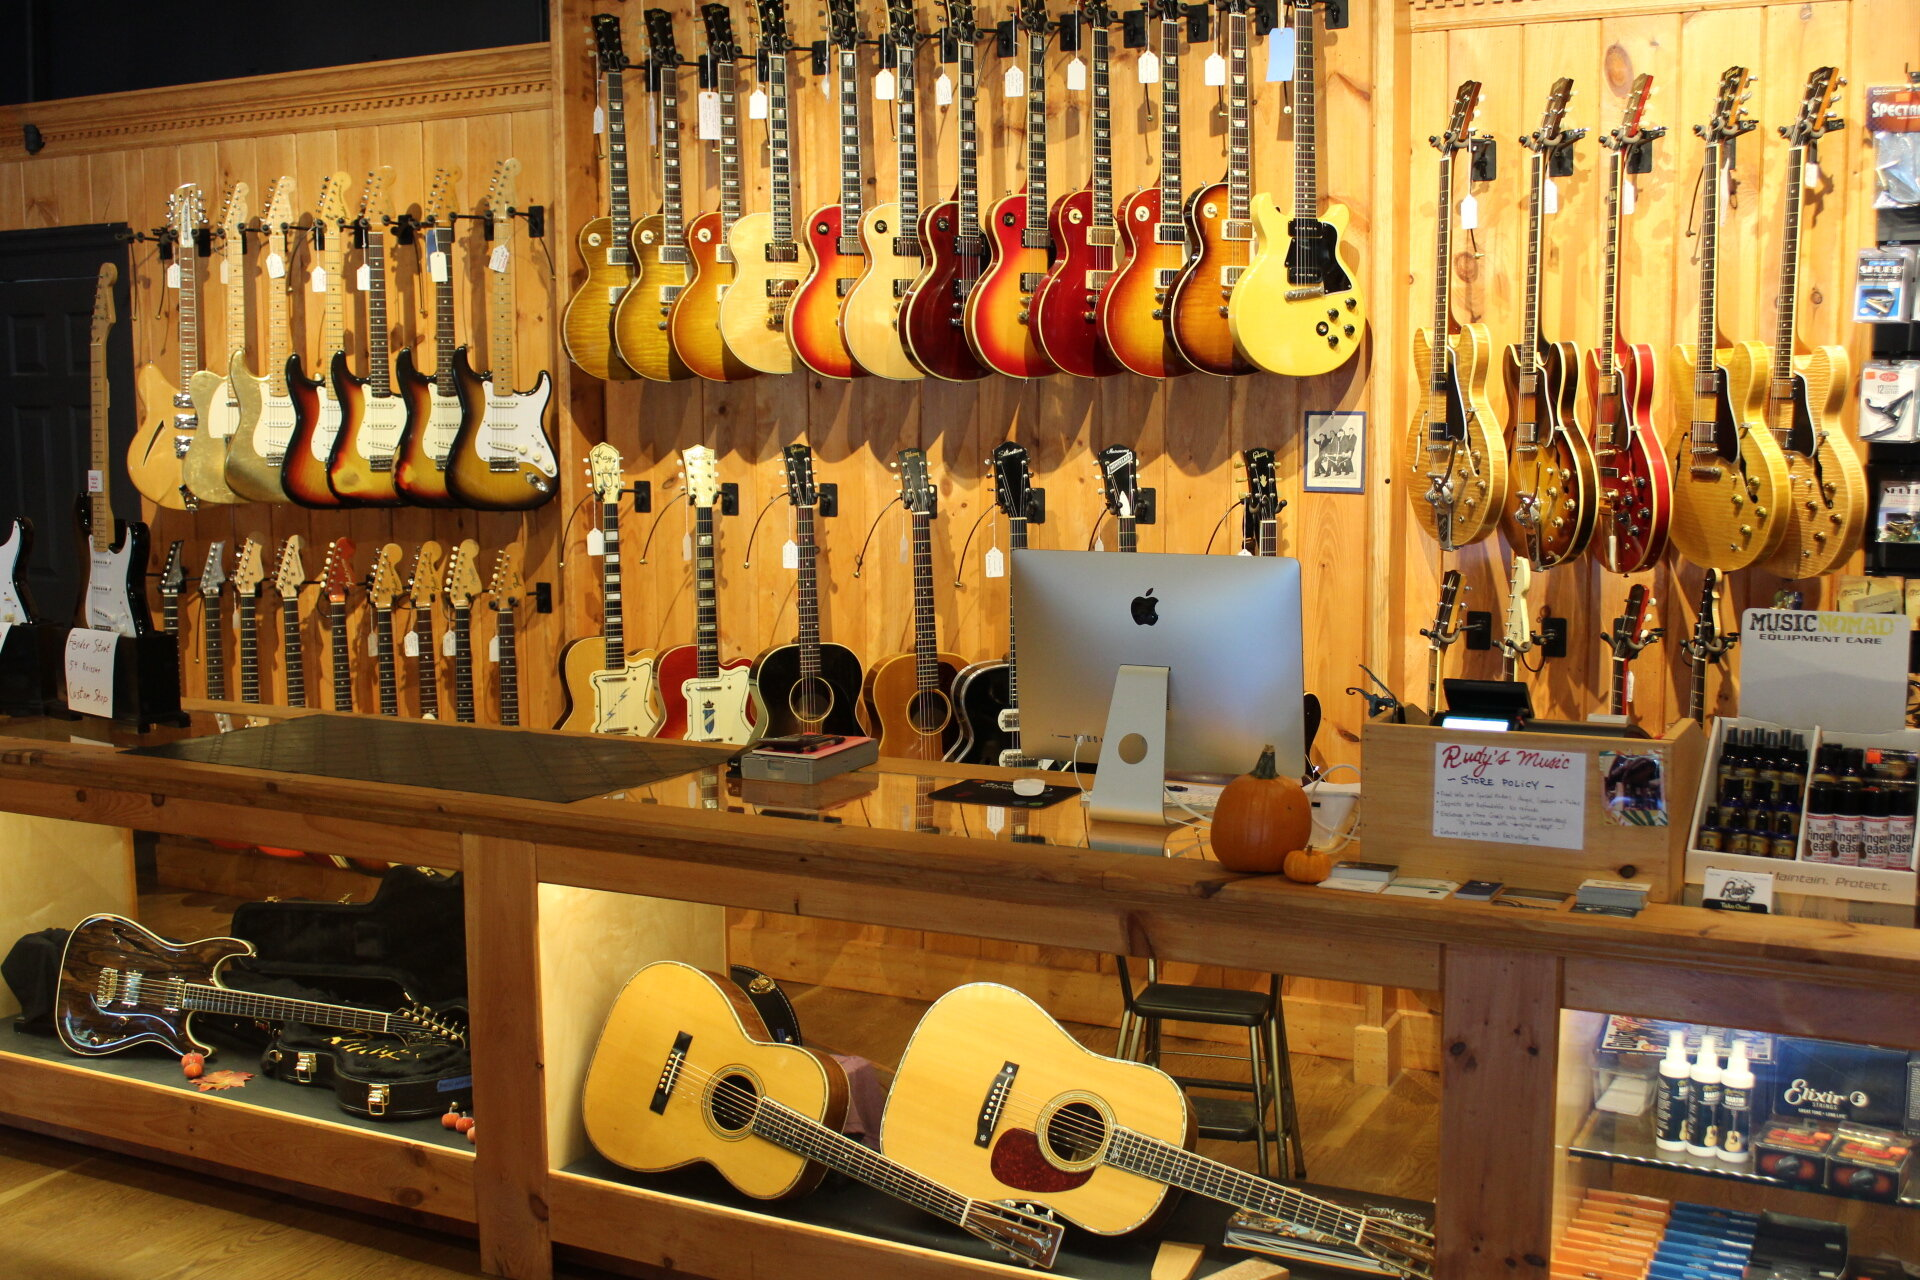 guitars displayed at Rudy's Music